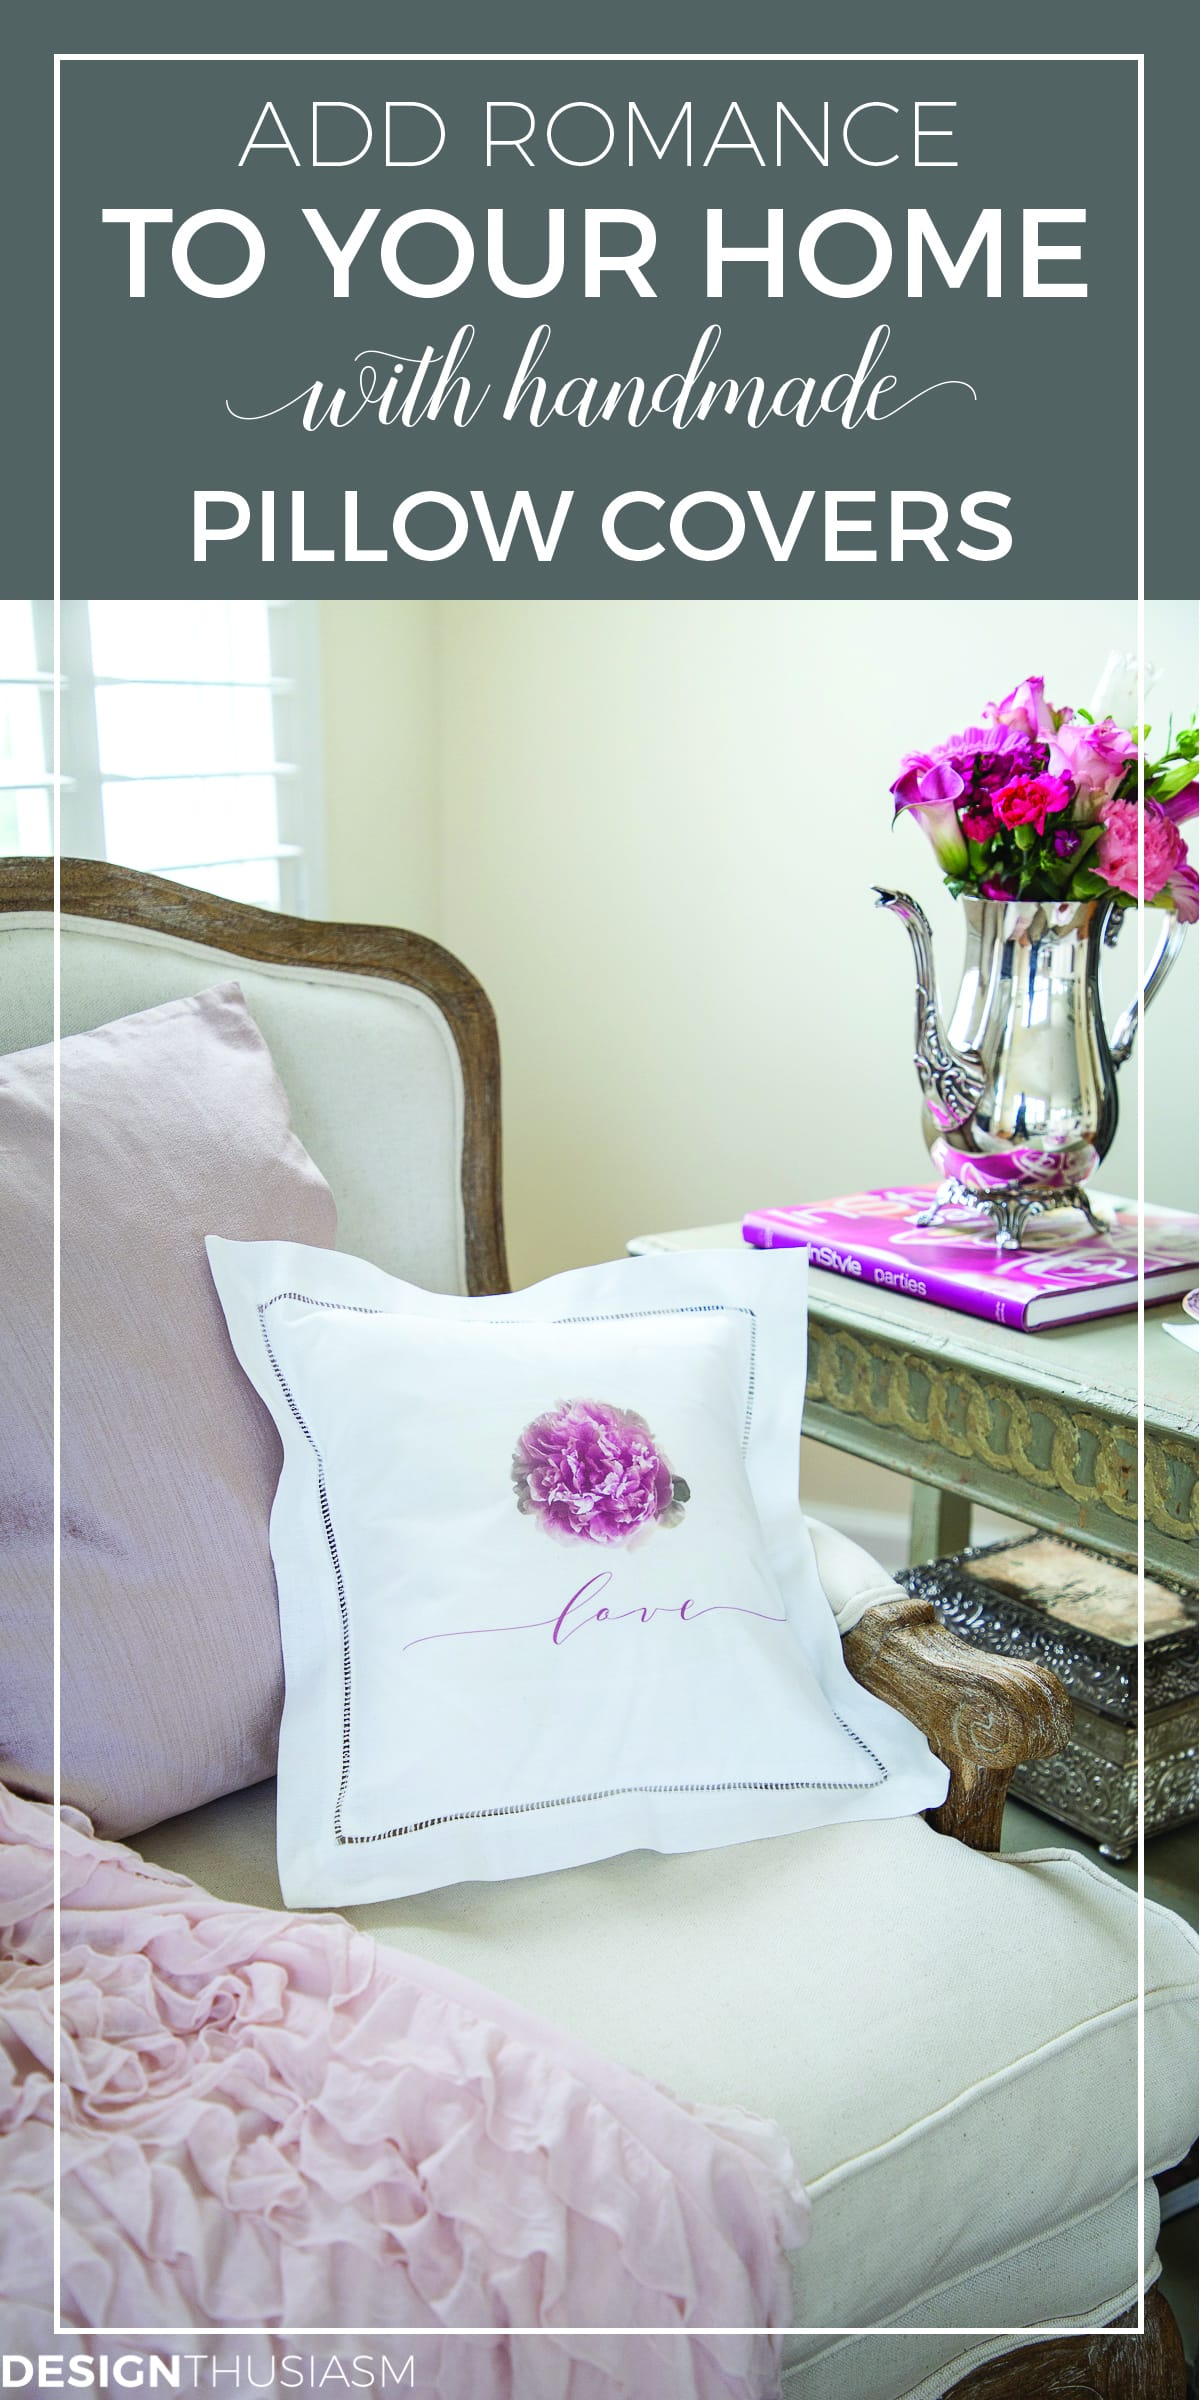 Adding Romance to Your Home with Handmade Decorative Pillow Covers - DESIGNTHUSIASM.COM